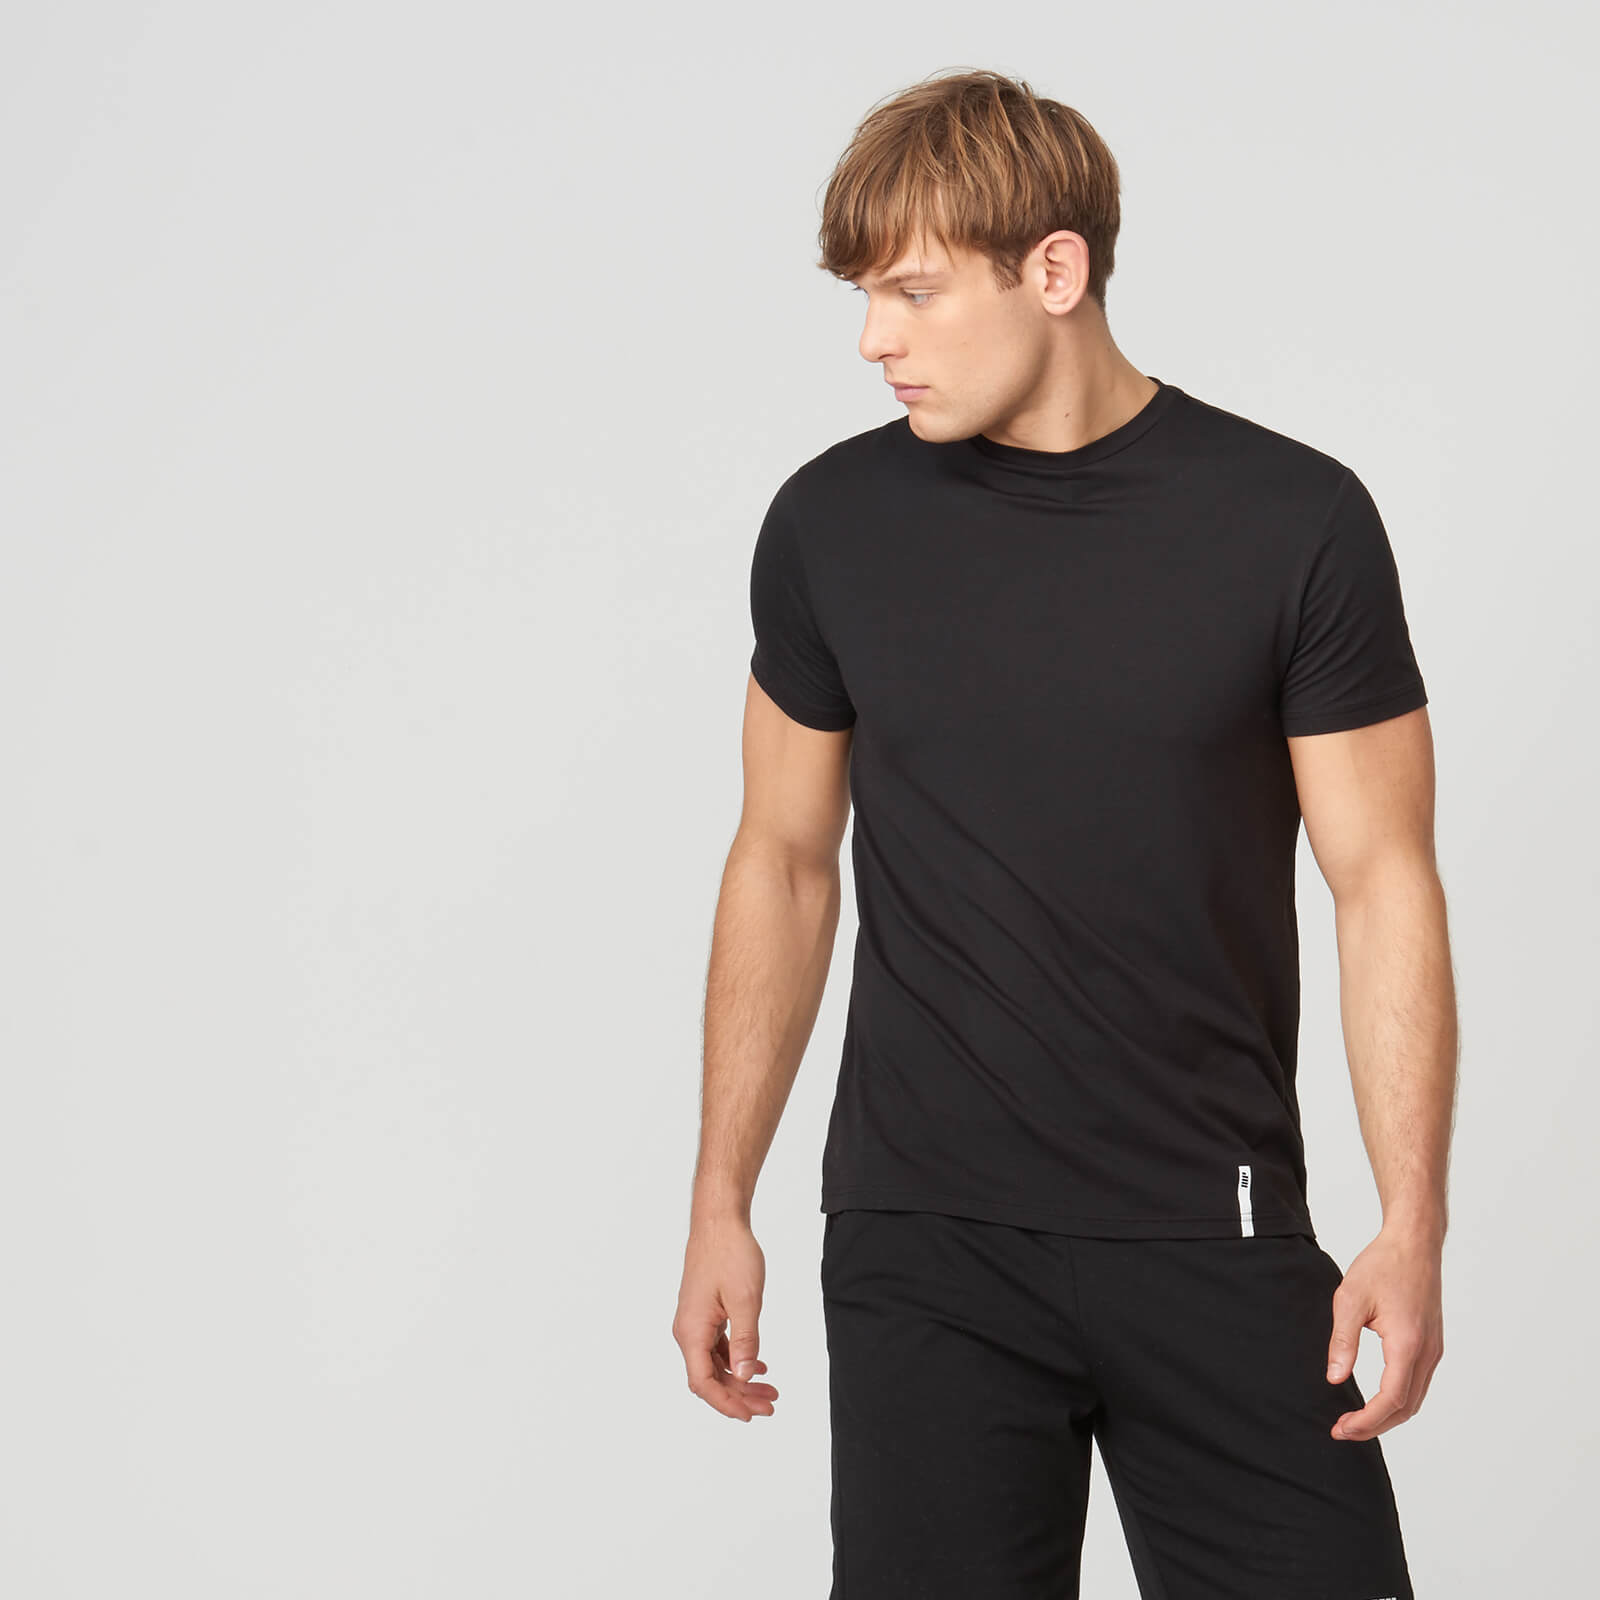 Myprotein Luxe Classic Crew T-Shirt - Black - S